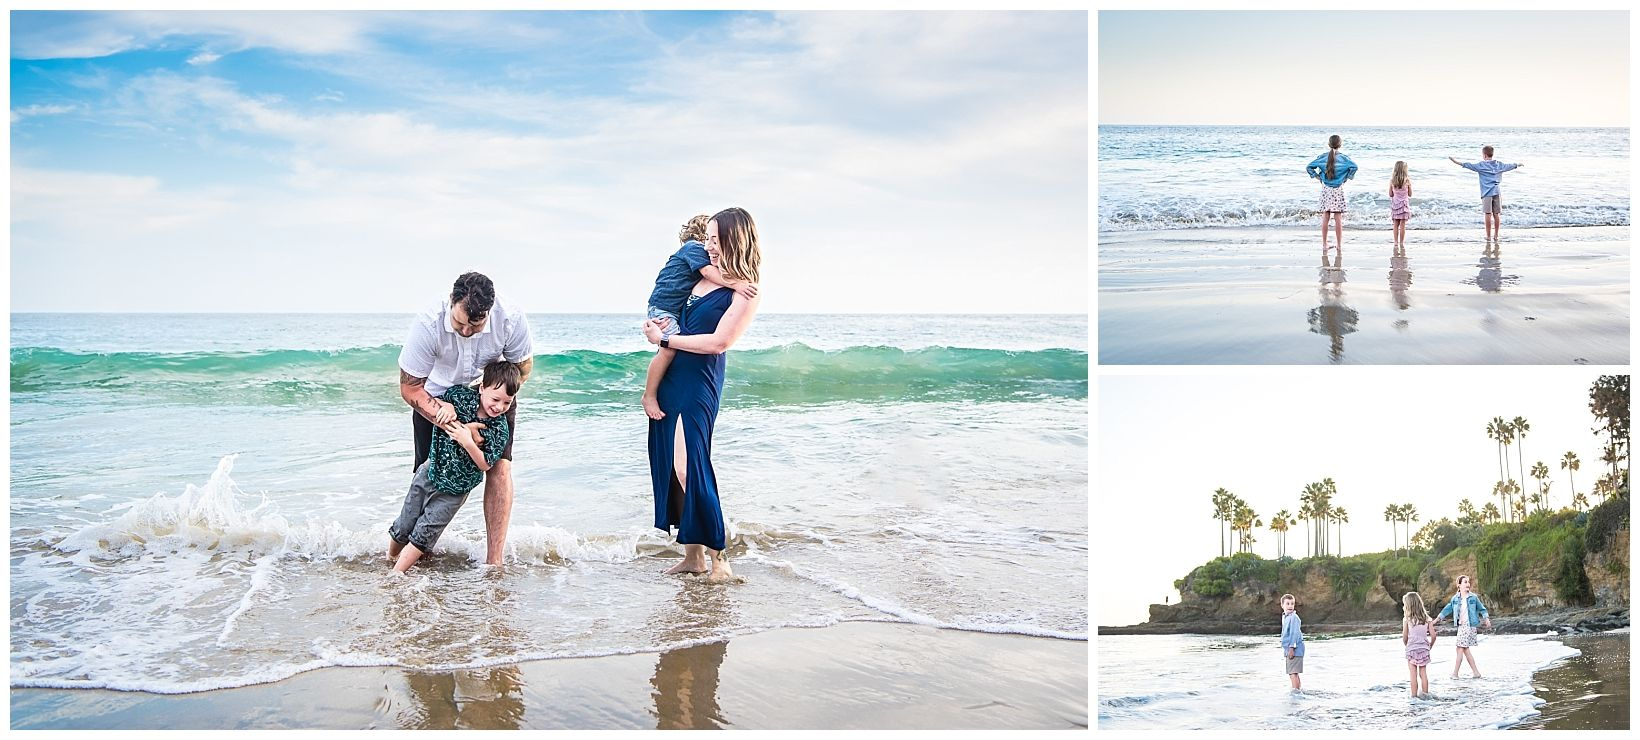 Lifestyle family photograph in Laguna Beach, CA